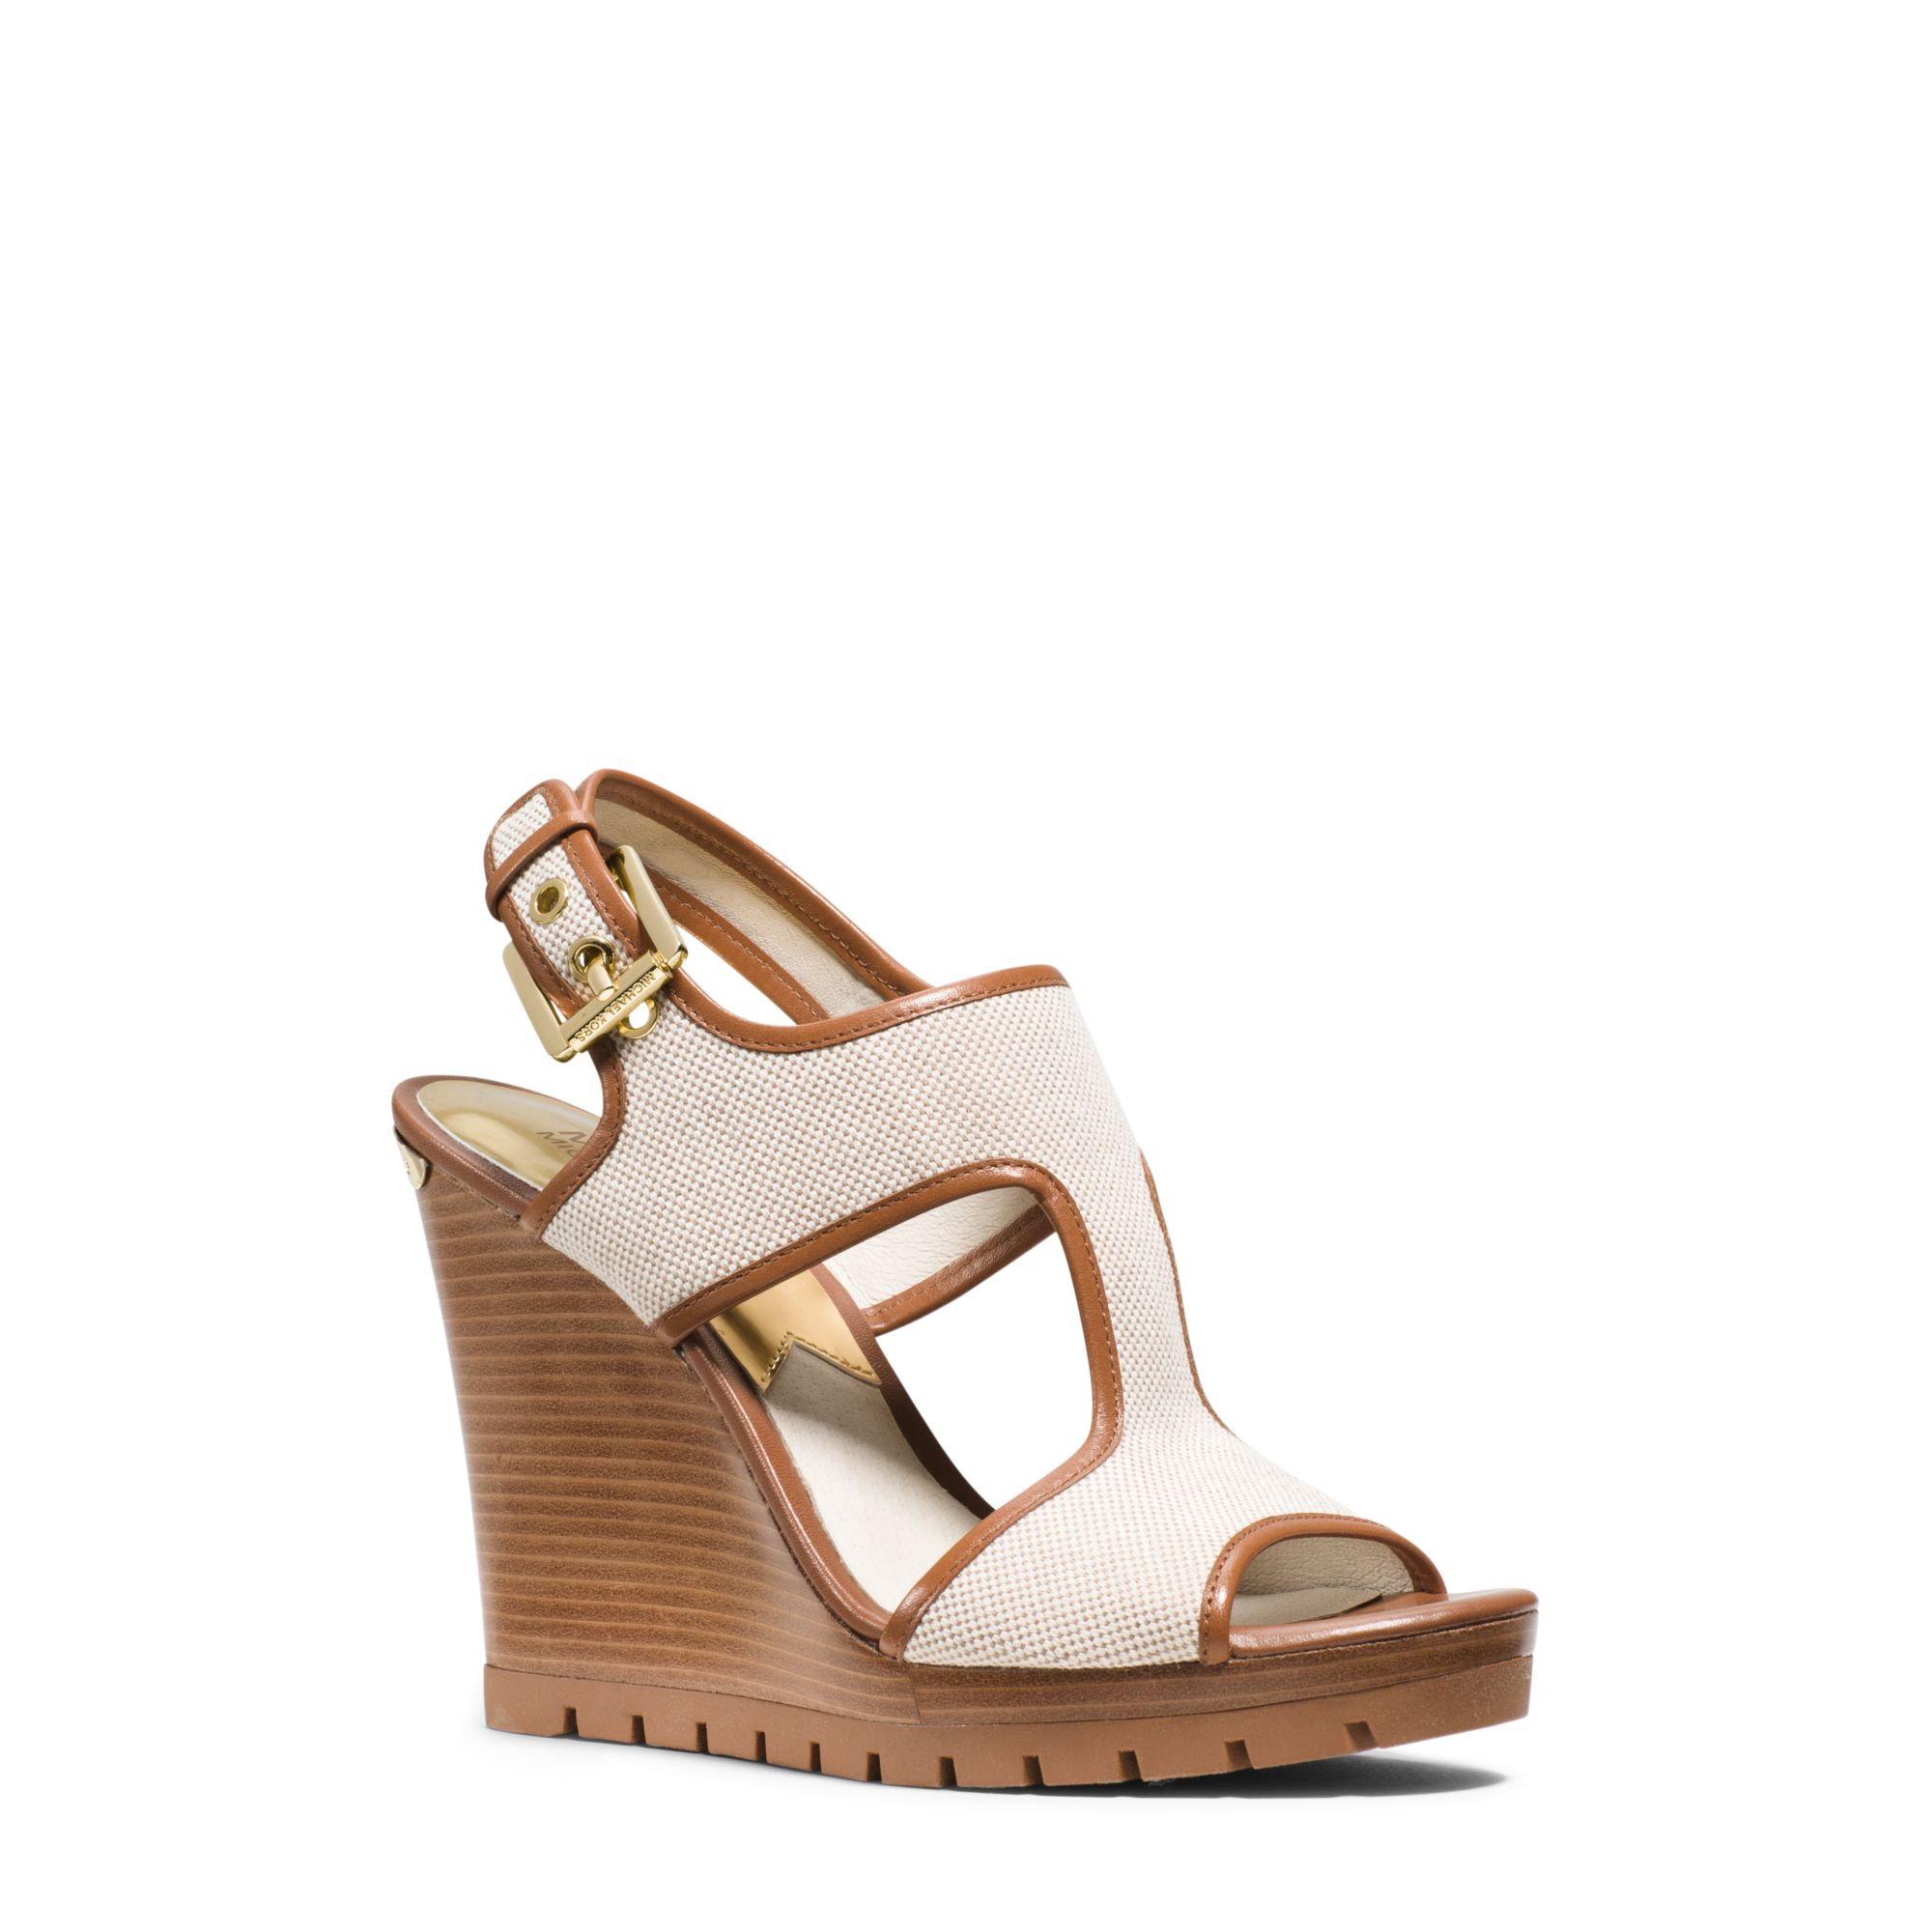 e0379ba5235e Lyst - Michael Kors Gillian Canvas And Leather Wedge in Natural